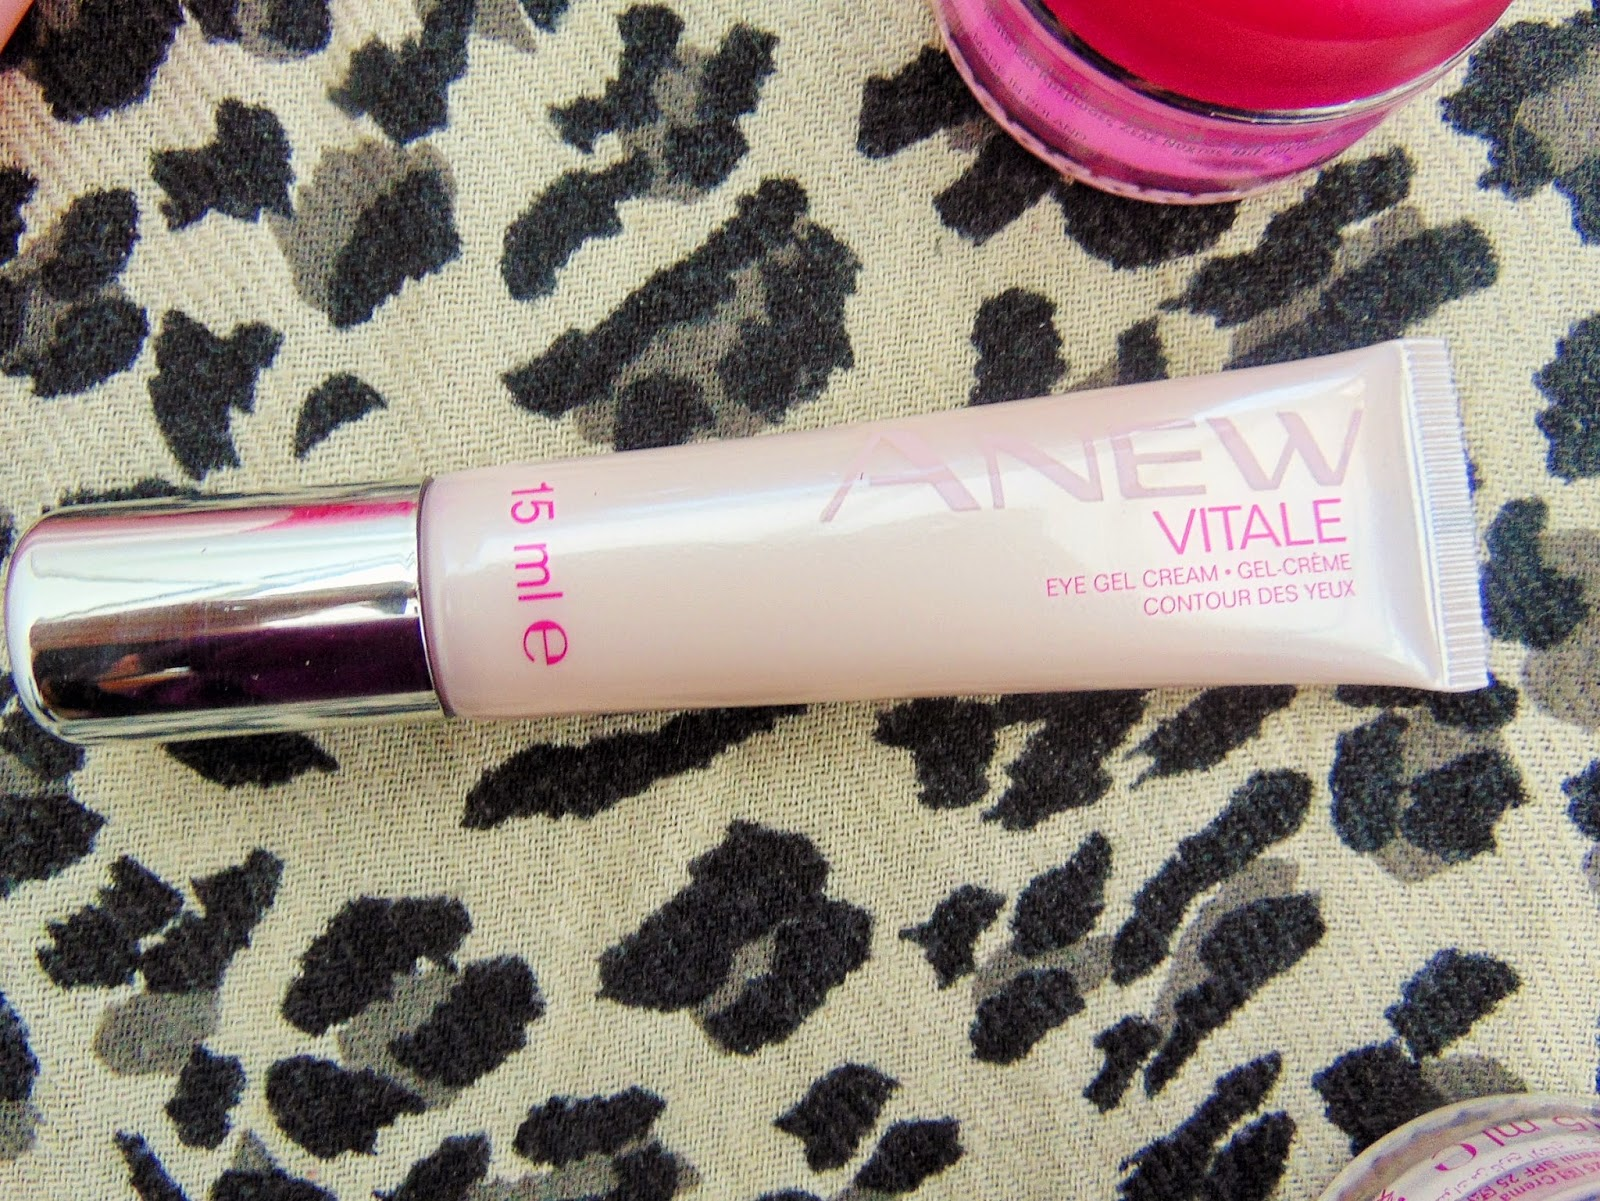 Avon Anew Vitale skincare kit eye gel